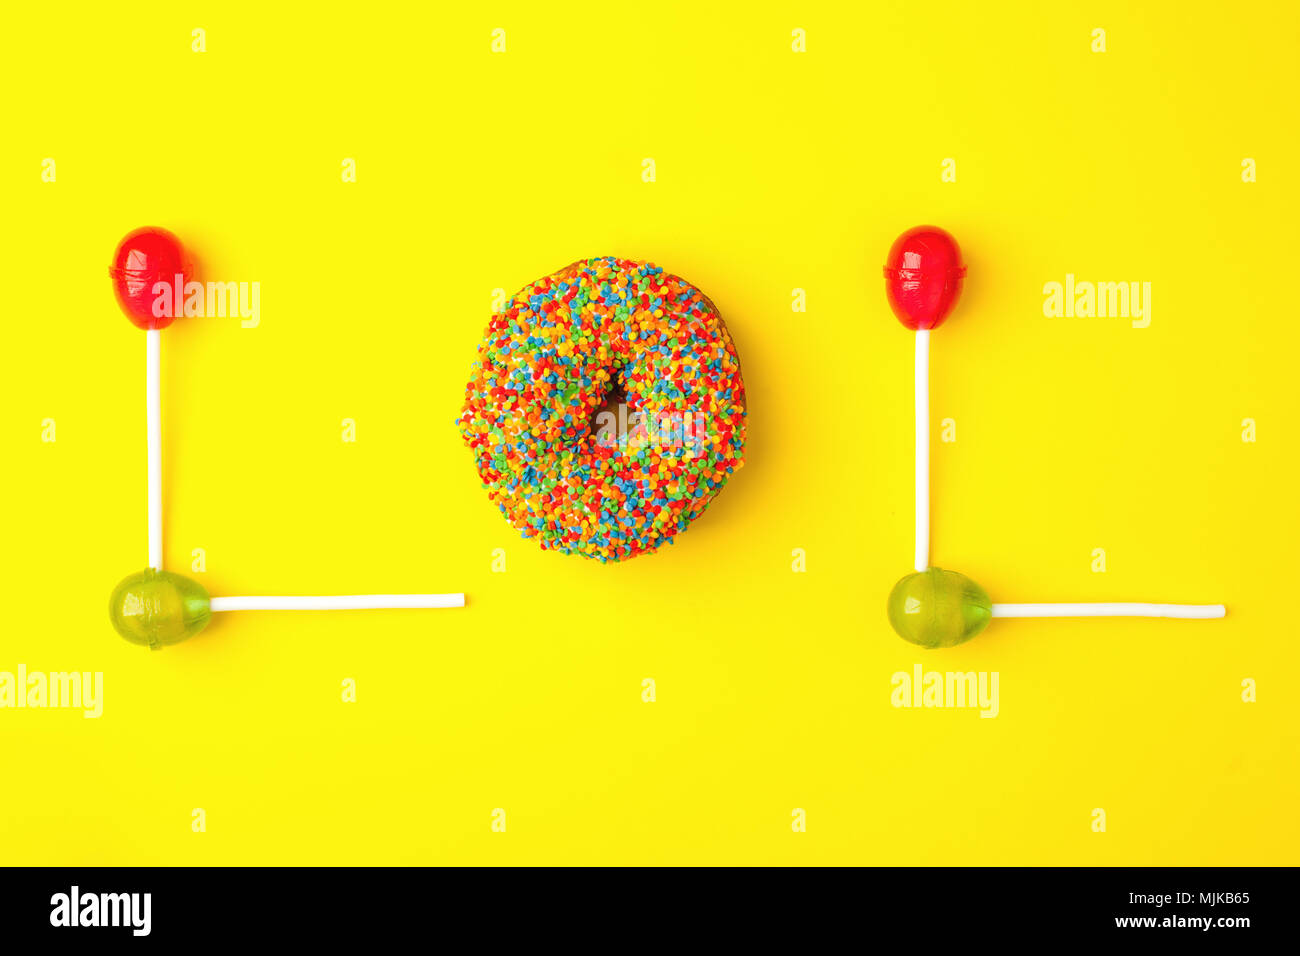 Word lol from sweetness on yellow background. Abbreviation stands for laugh out loud, flat lay trendy background - Stock Image